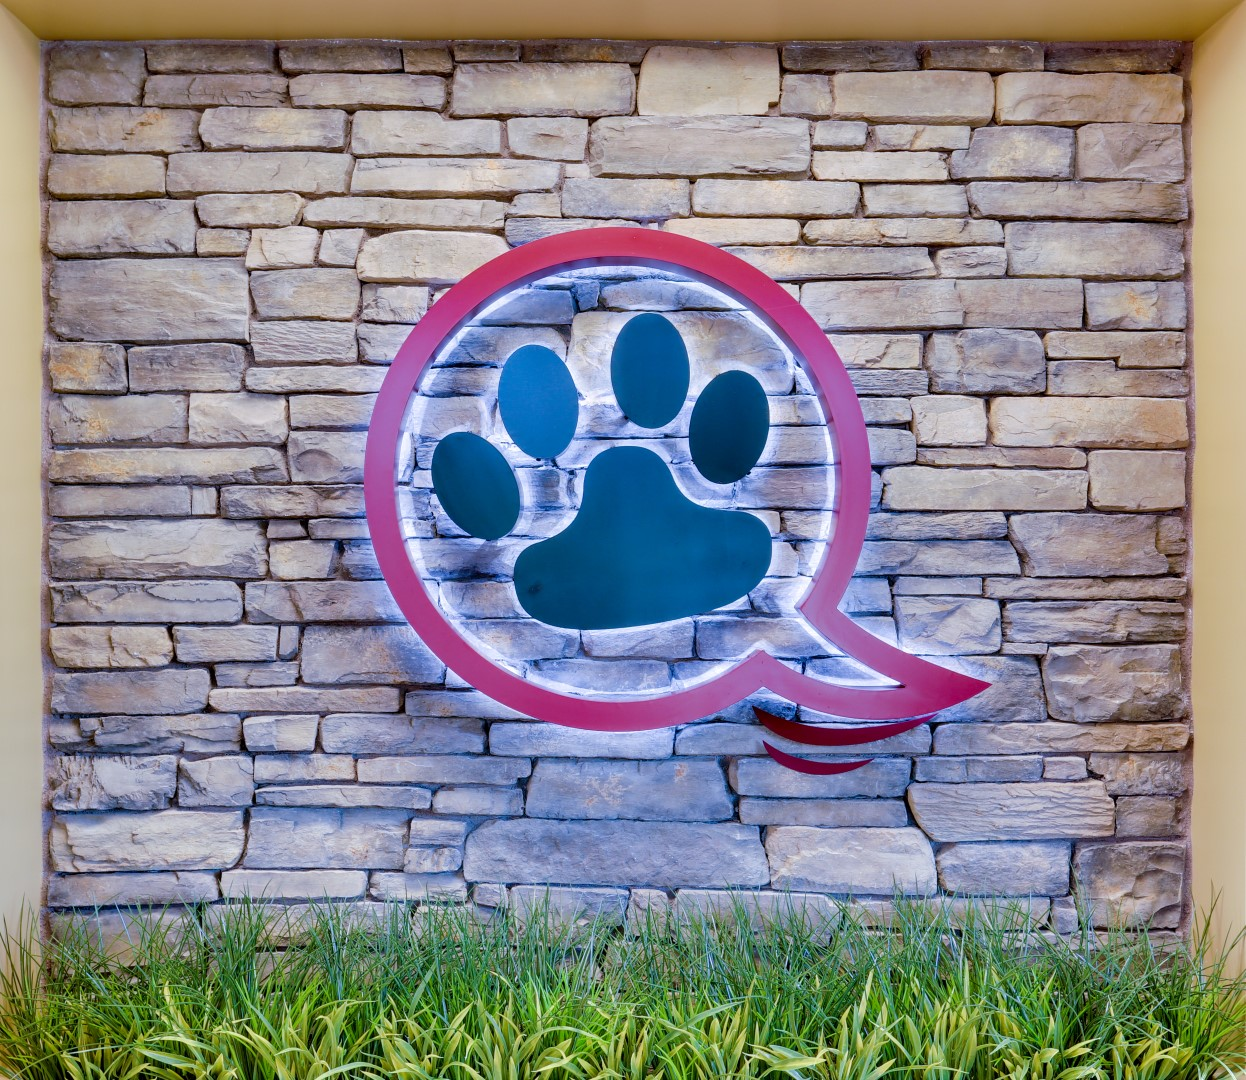 Copper Canyon Apartments: Indian Trail Animal Hospital